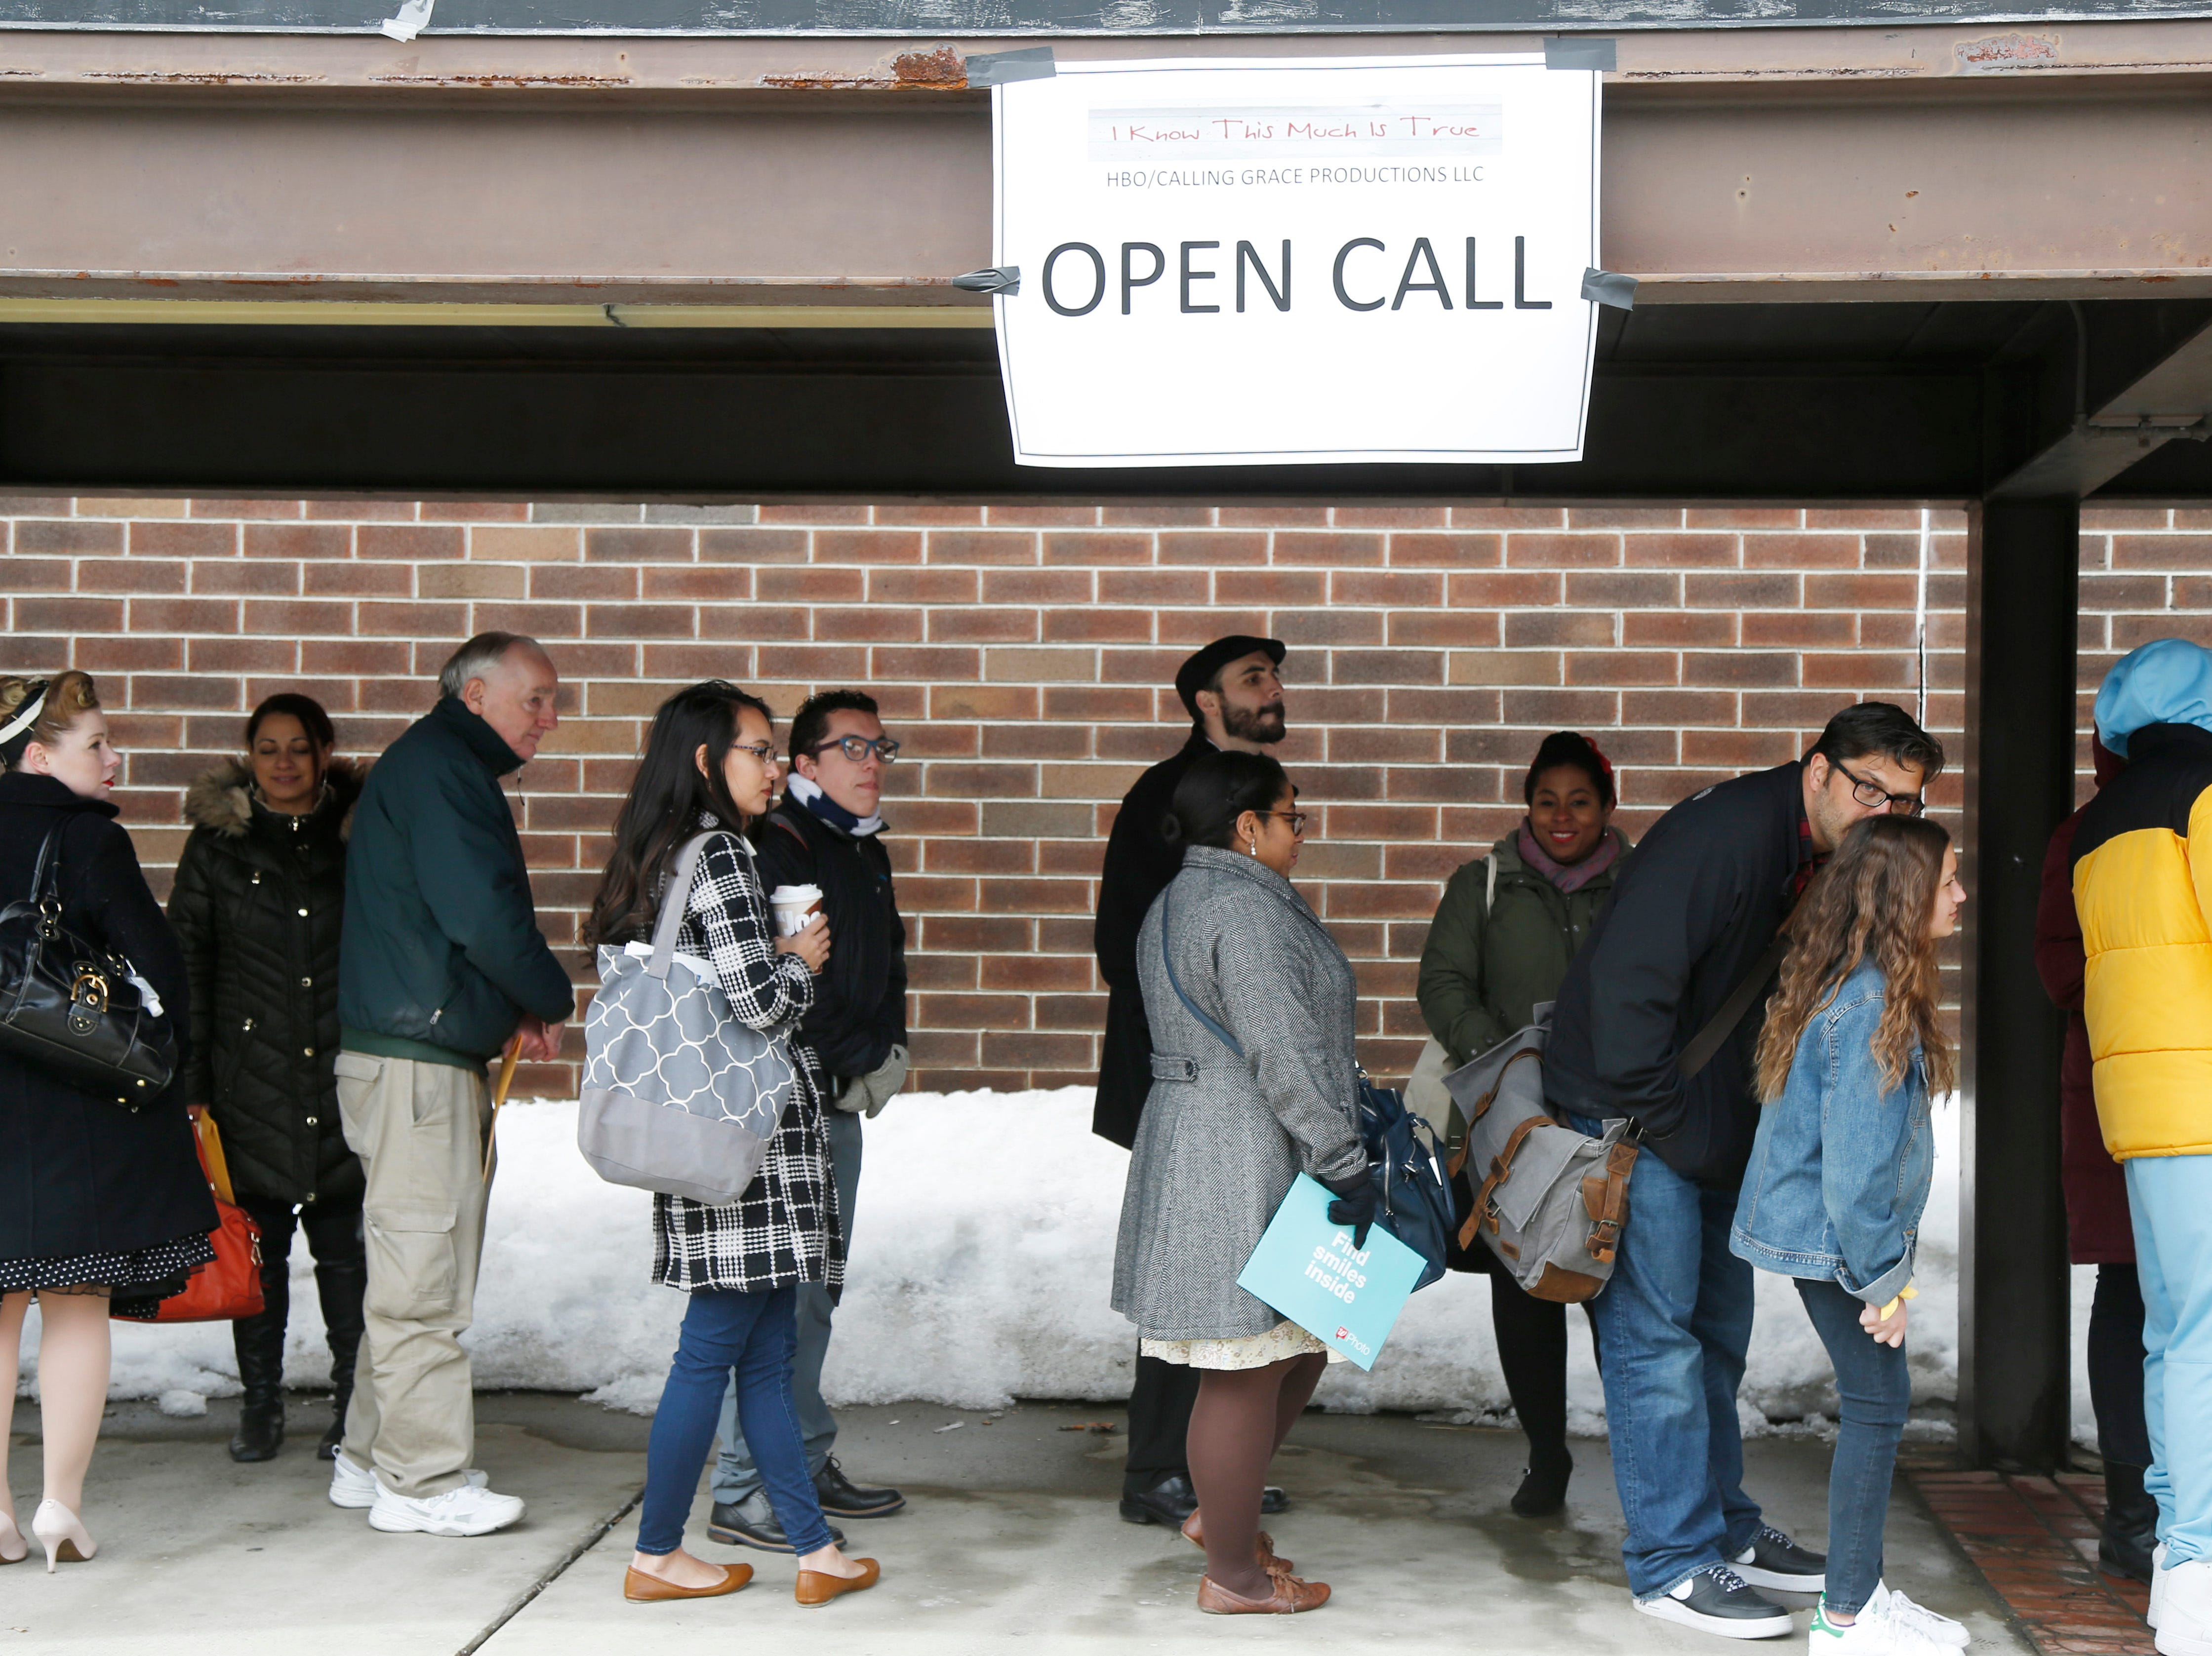 """A long line of candidates line up for Saturday's open casting call for an HBO series staring Mark Ruffalo, called """"I Know This Much is True"""" at the Majed J. Nesheiwat Convention Center in the City of Poughkeepsie on Feb 23, 2019."""